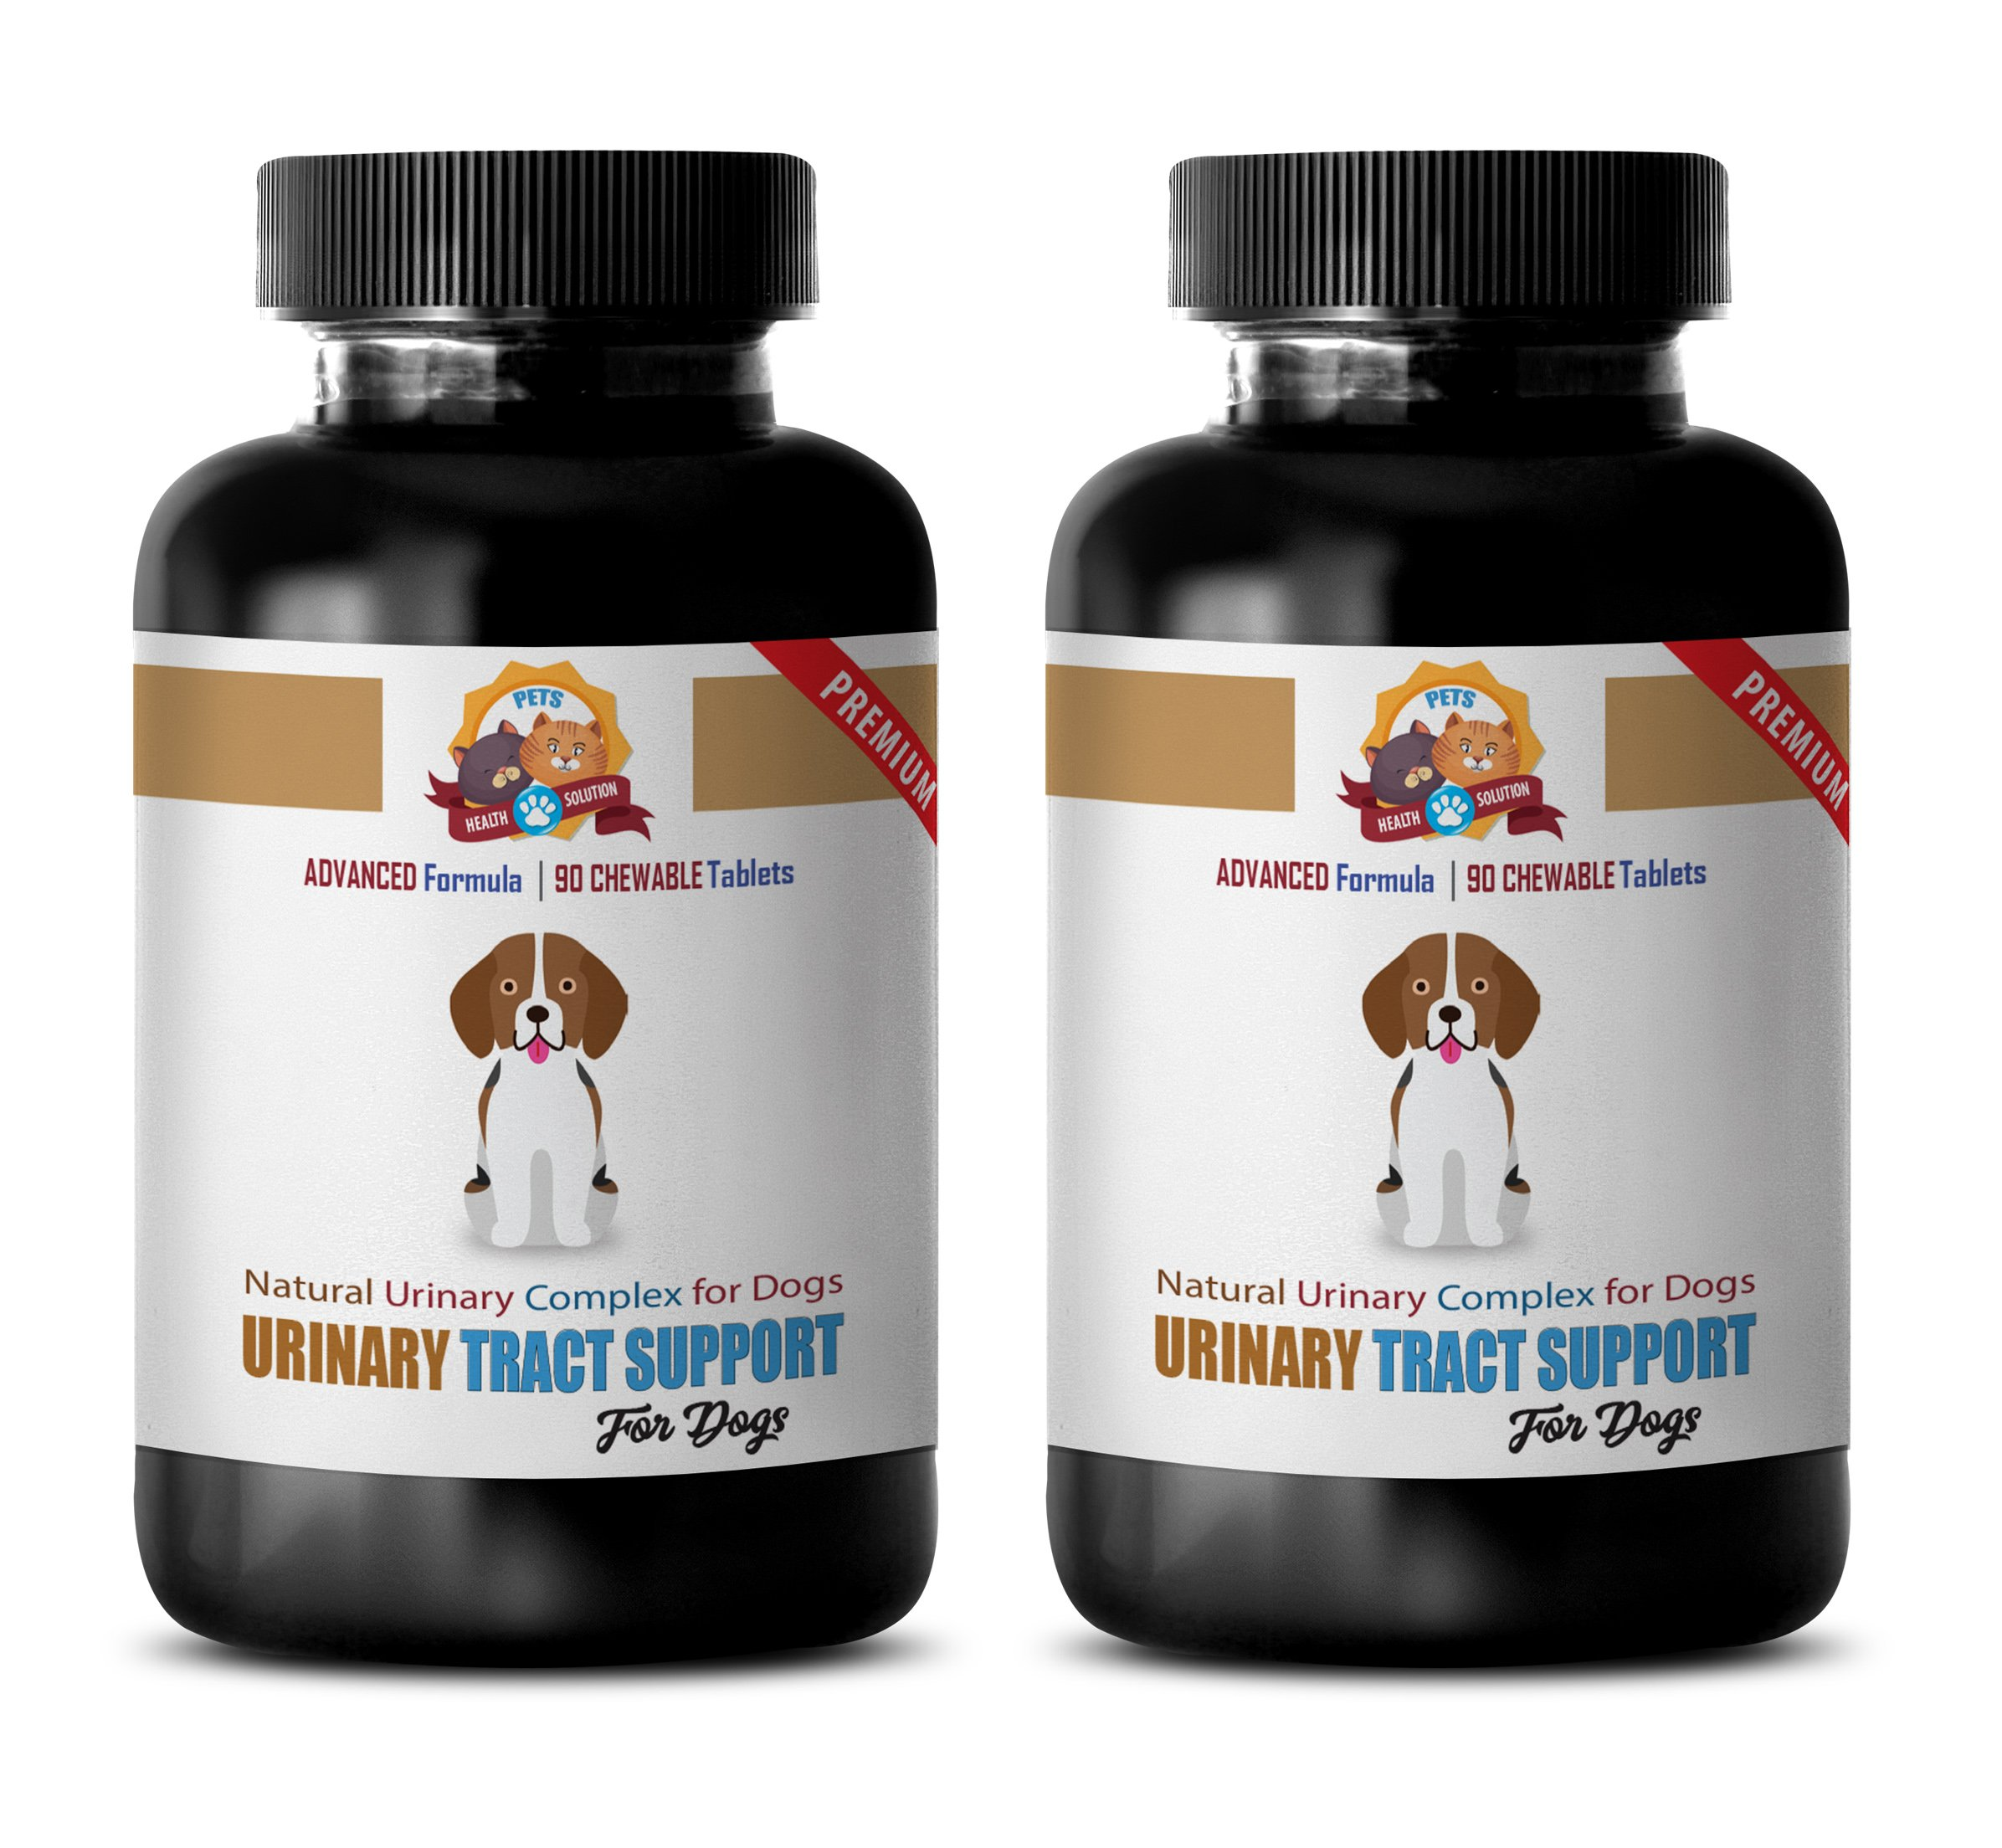 PETS HEALTH SOLUTION dog bladder support - NATURAL URINARY TRACT SUPPORT - DOG TREATS - PREMIUM ADVANCED COMPLEX - dog cranberry extract - 180 Treats (2 Bottle)